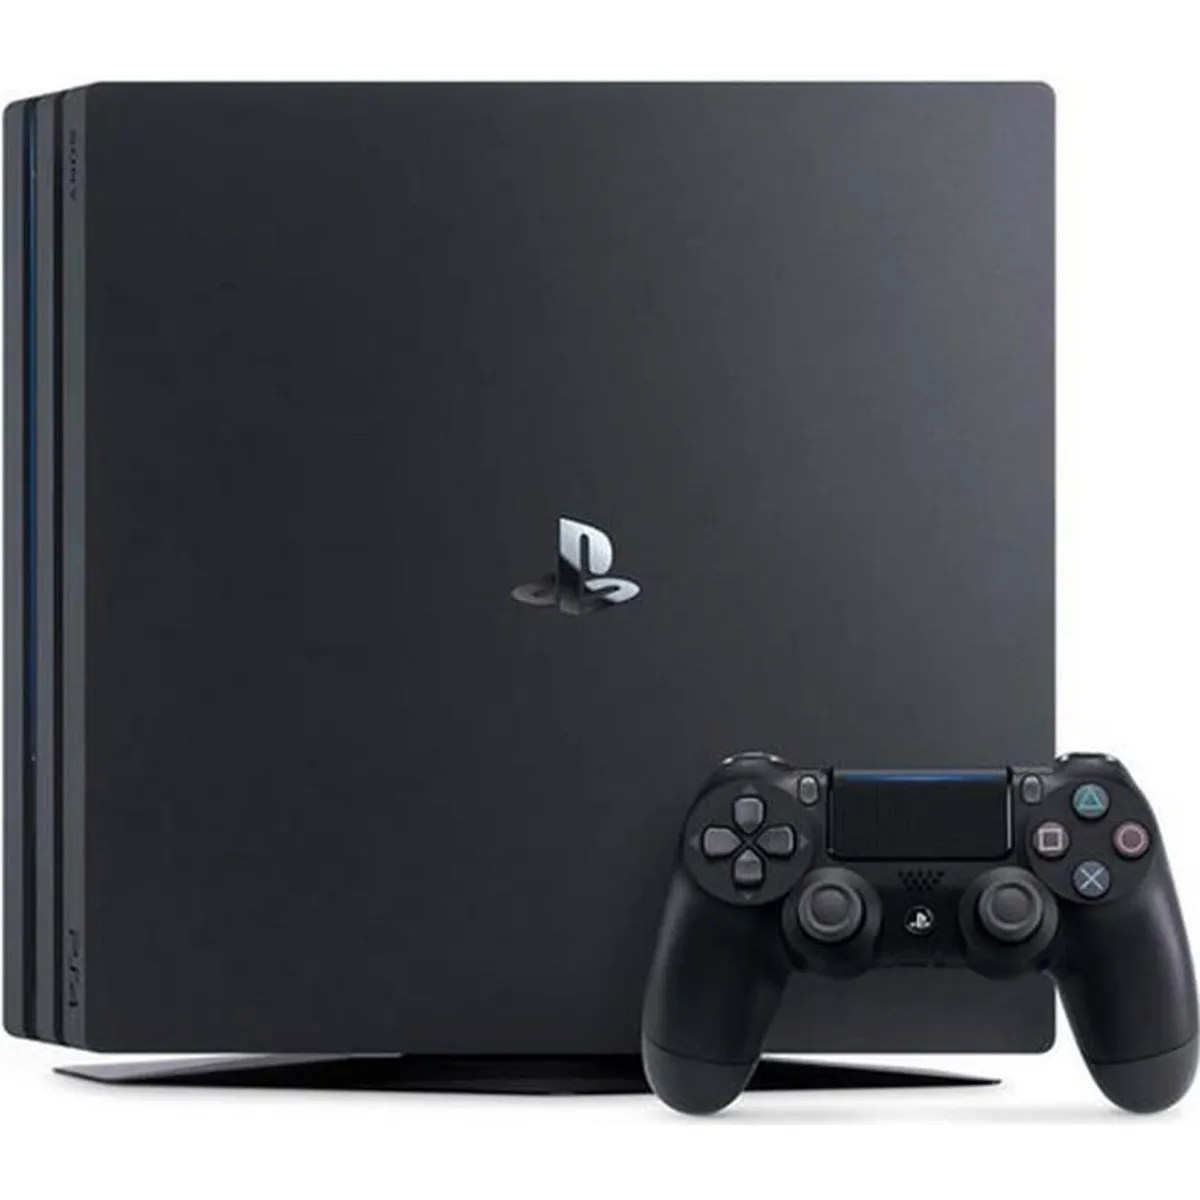 Magasin Console Occasion Console Ps4 Pro 1 Tb Noir Achat Vente Console Ps4